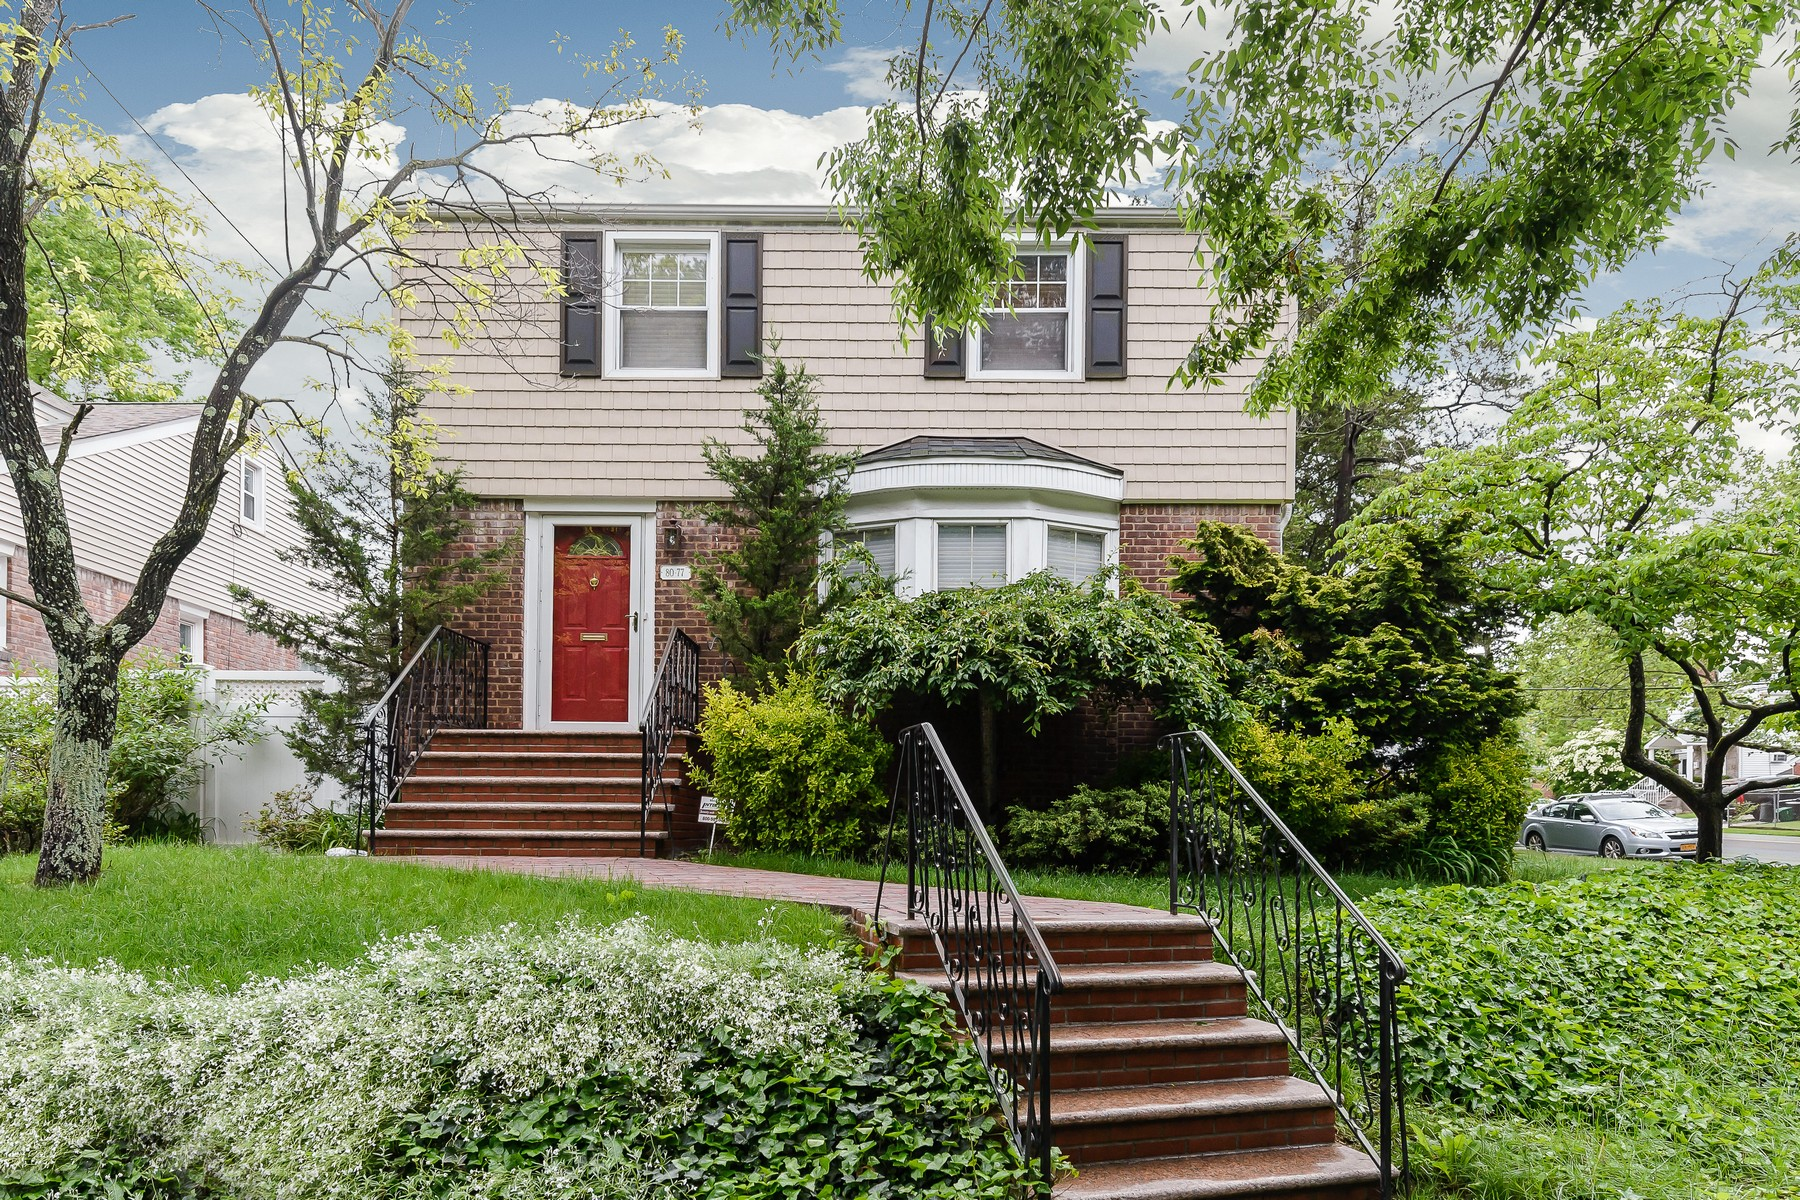 Single Family Home for Sale at Colonial 80-77 208th St Queens Village, New York 11427 United States